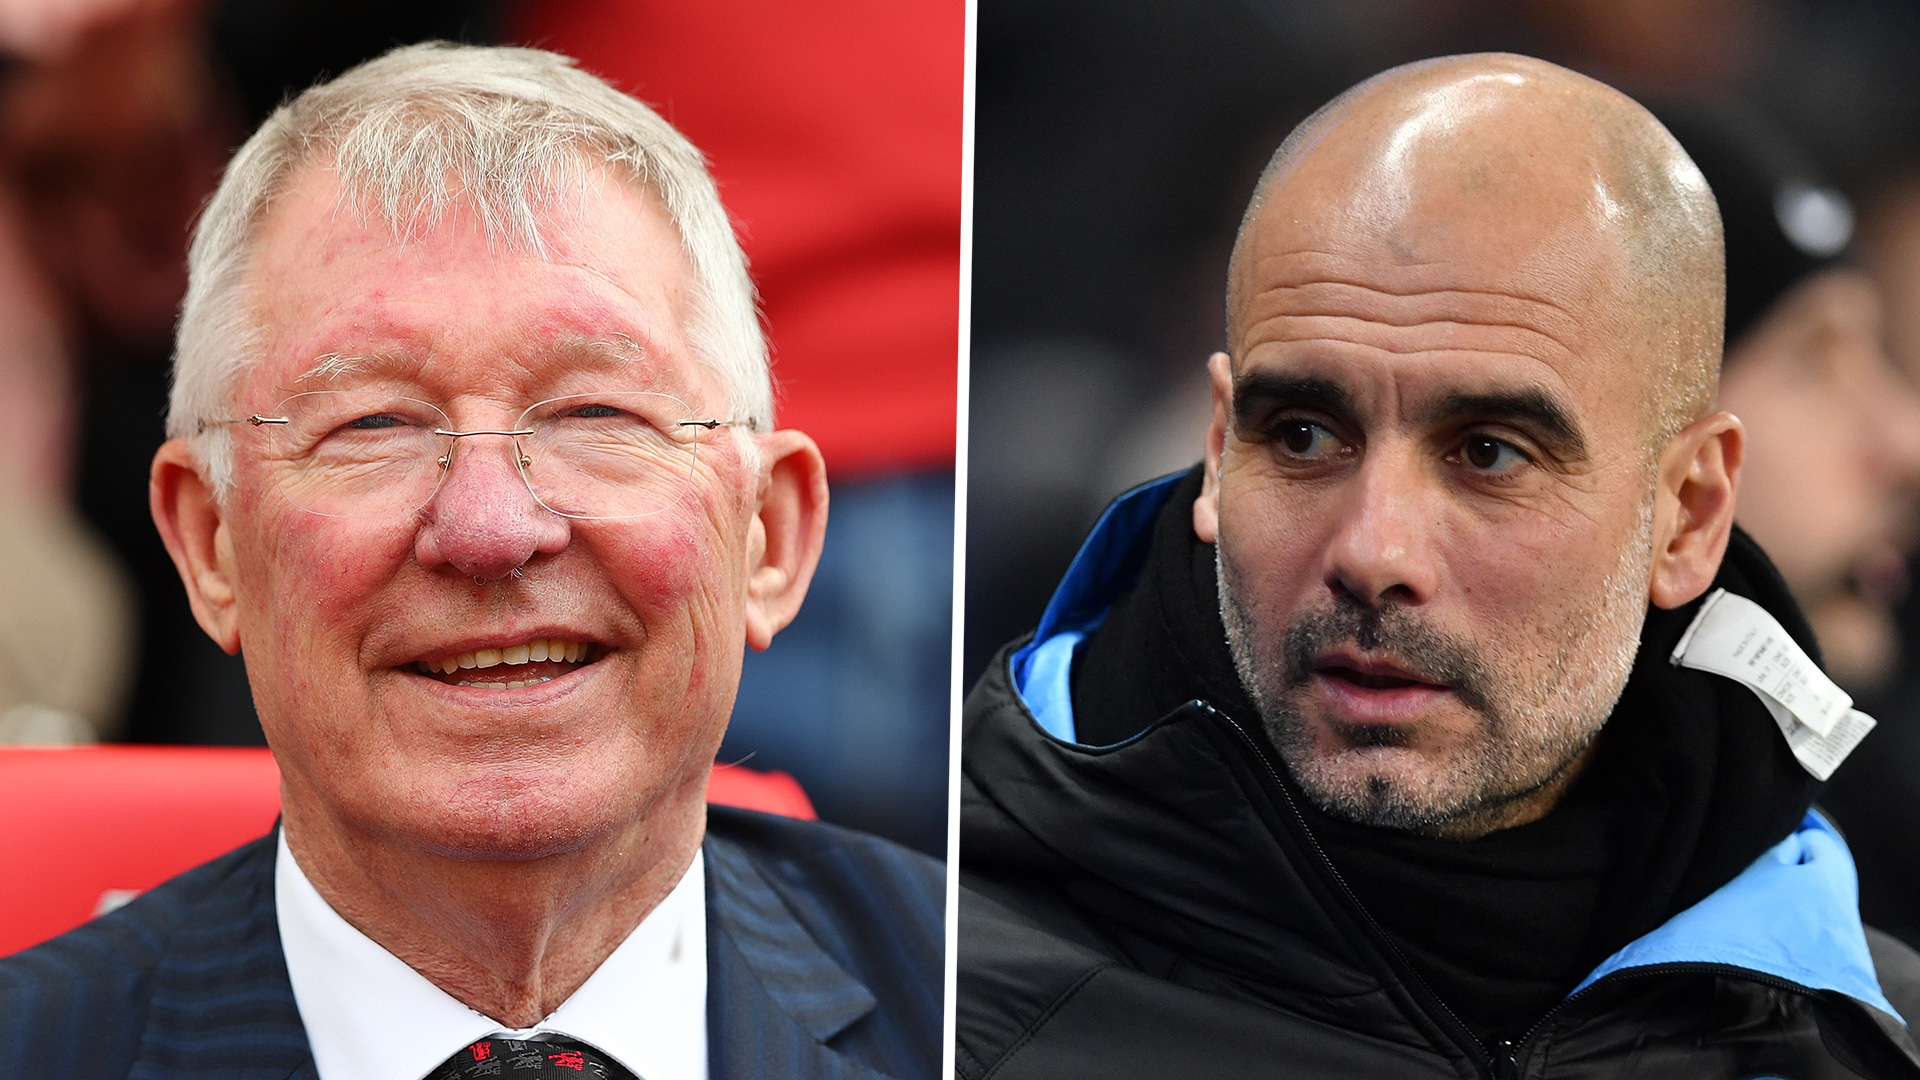 guardiola-on-repeat-to-construct-premier-league-first-since-man-utd-myth-ferguson-retired.jpg